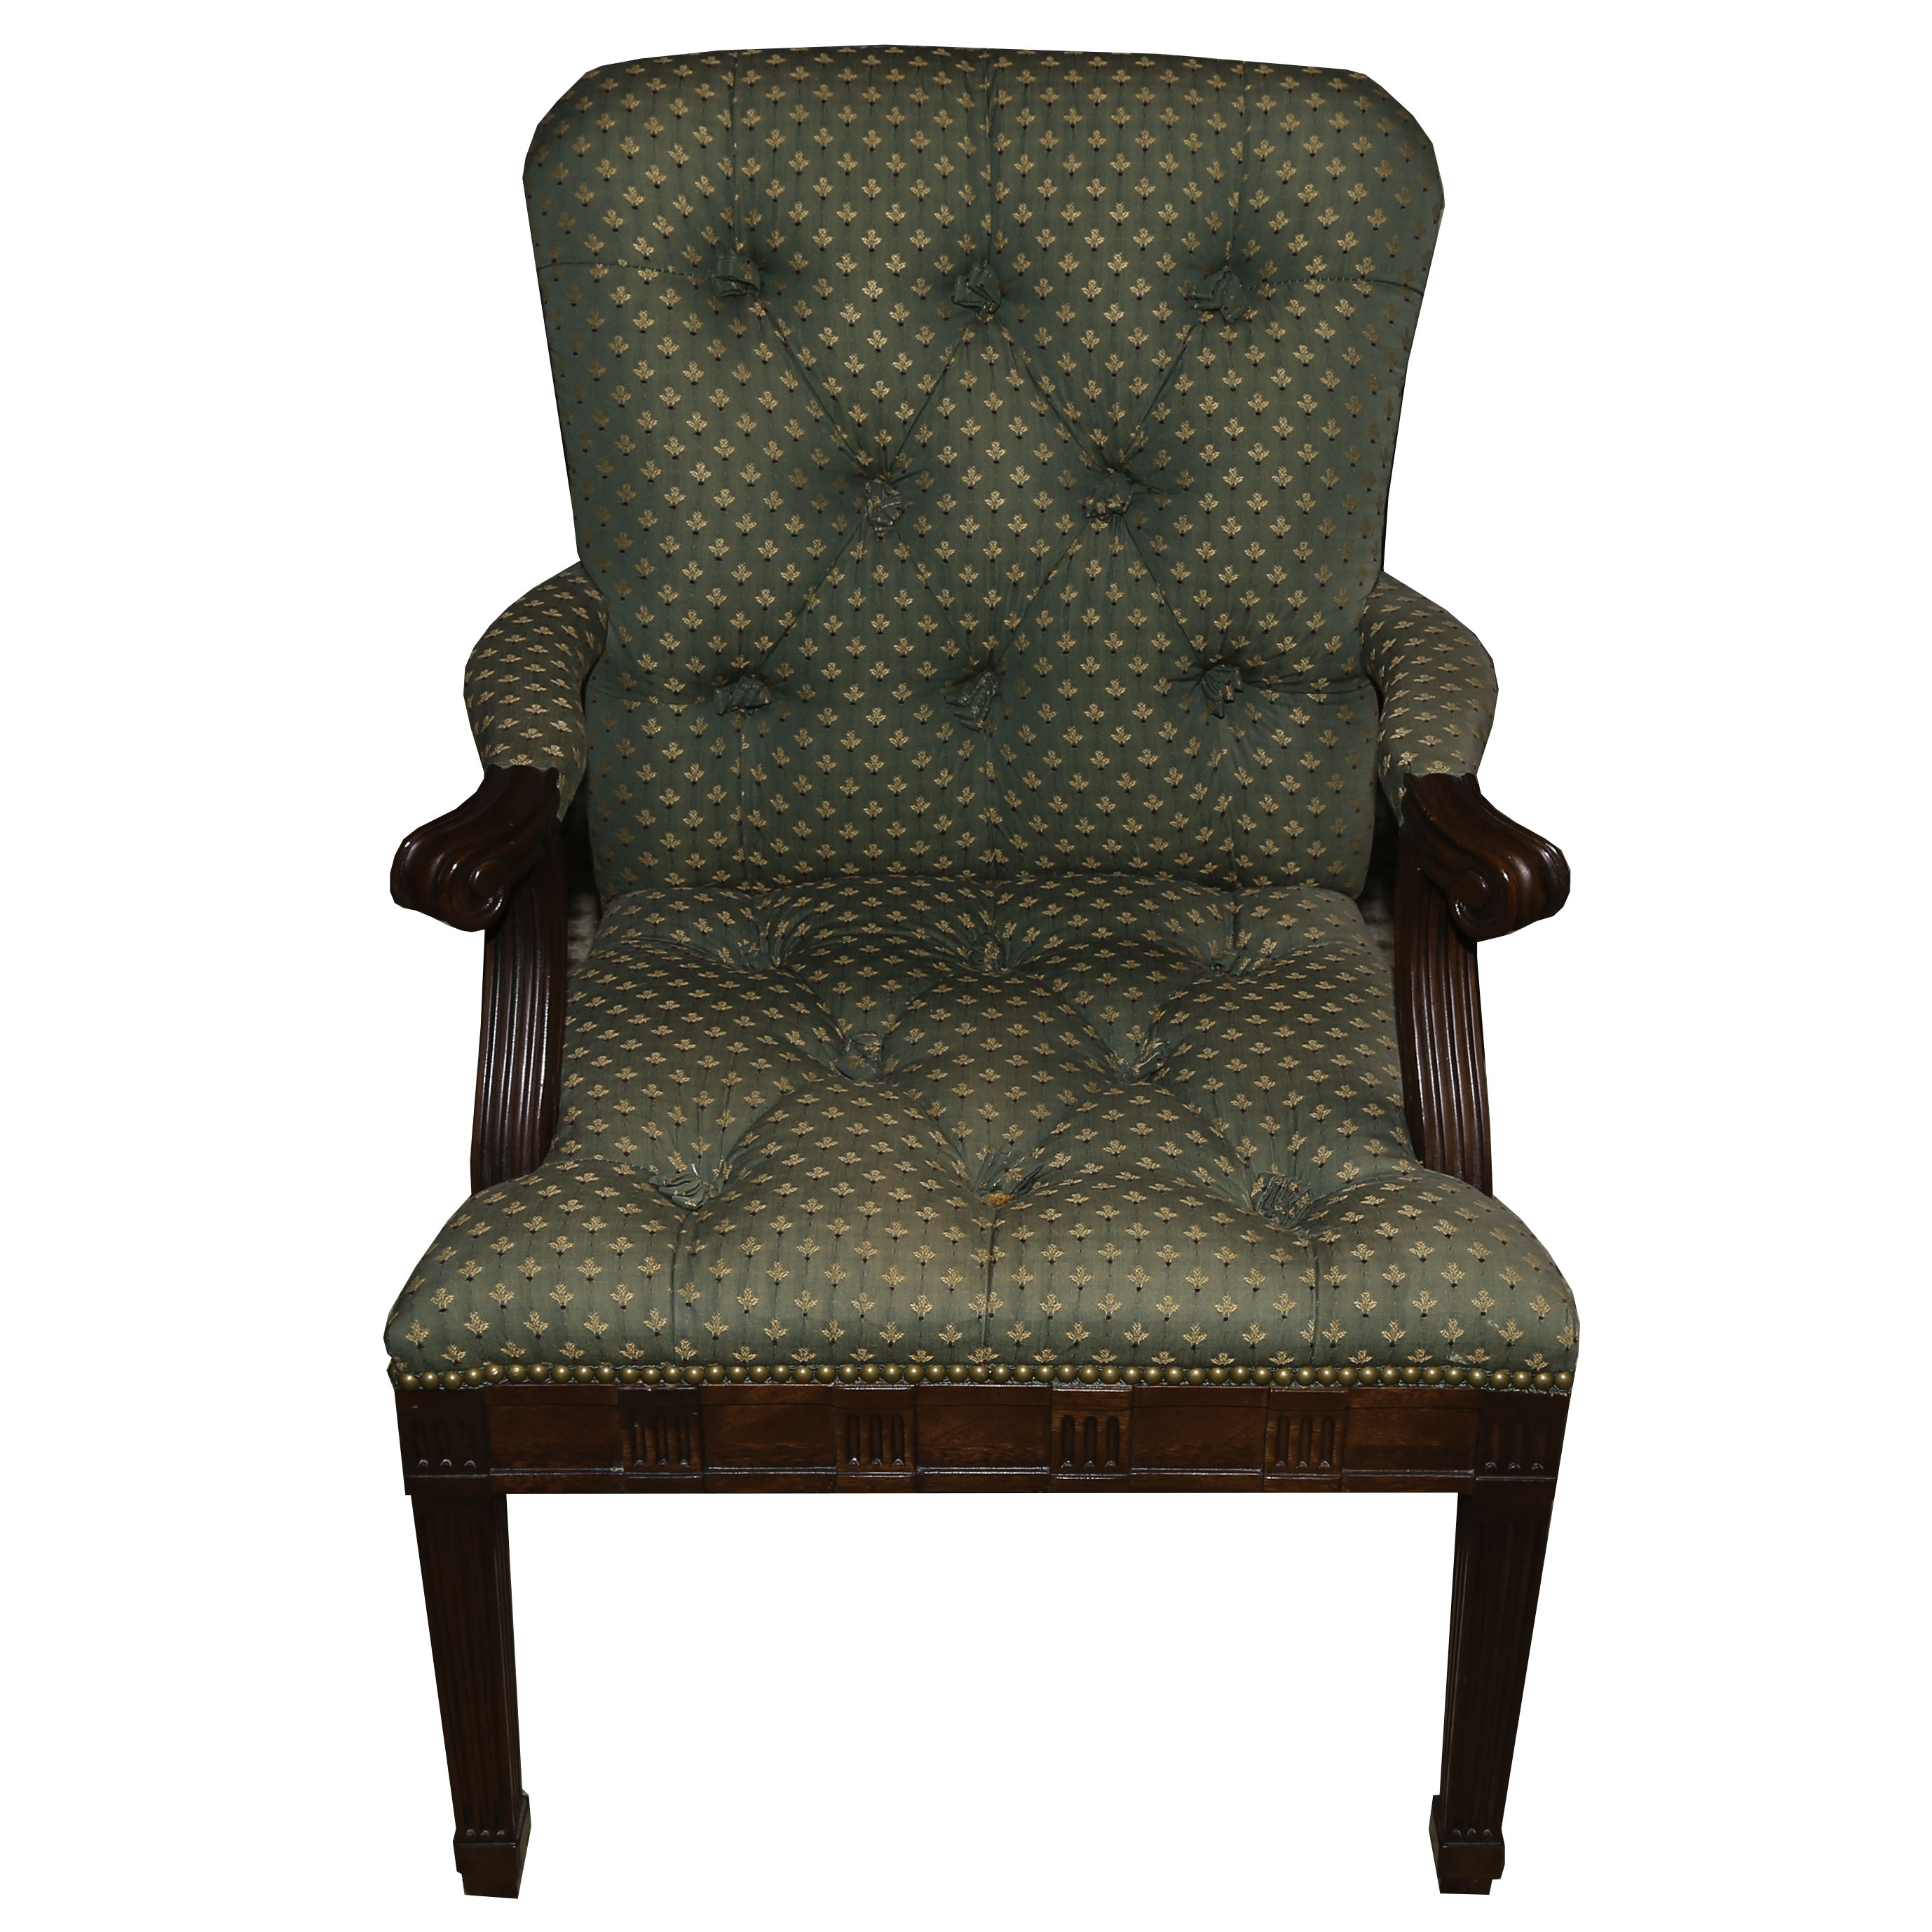 hickory chair louis xvi iron table and chairs edwardian upholstered armchair by 20th century ebth